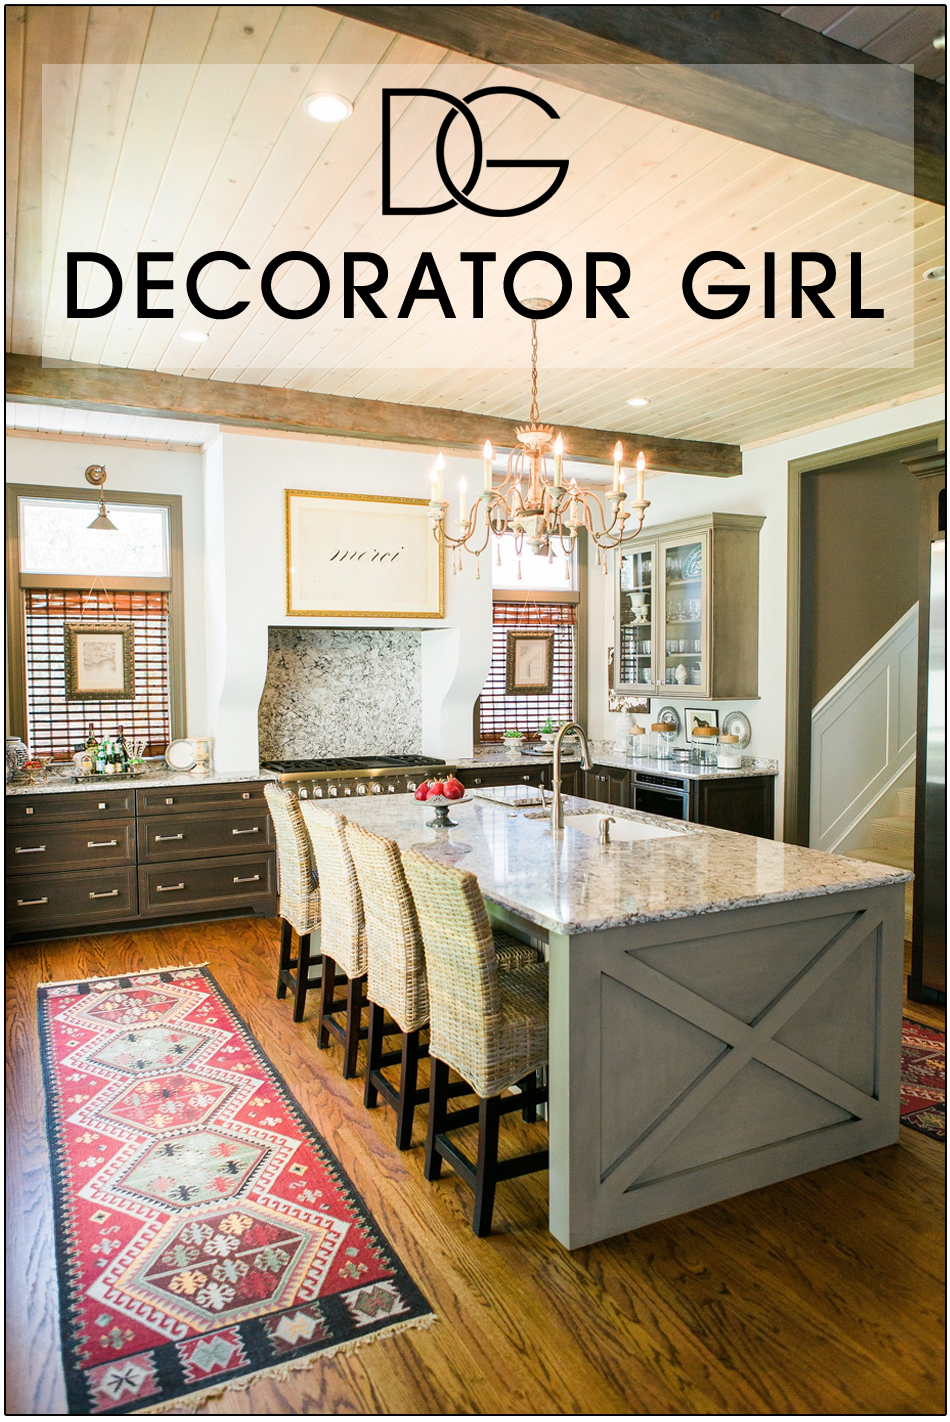 Decorator girl - Interior home decorator ...